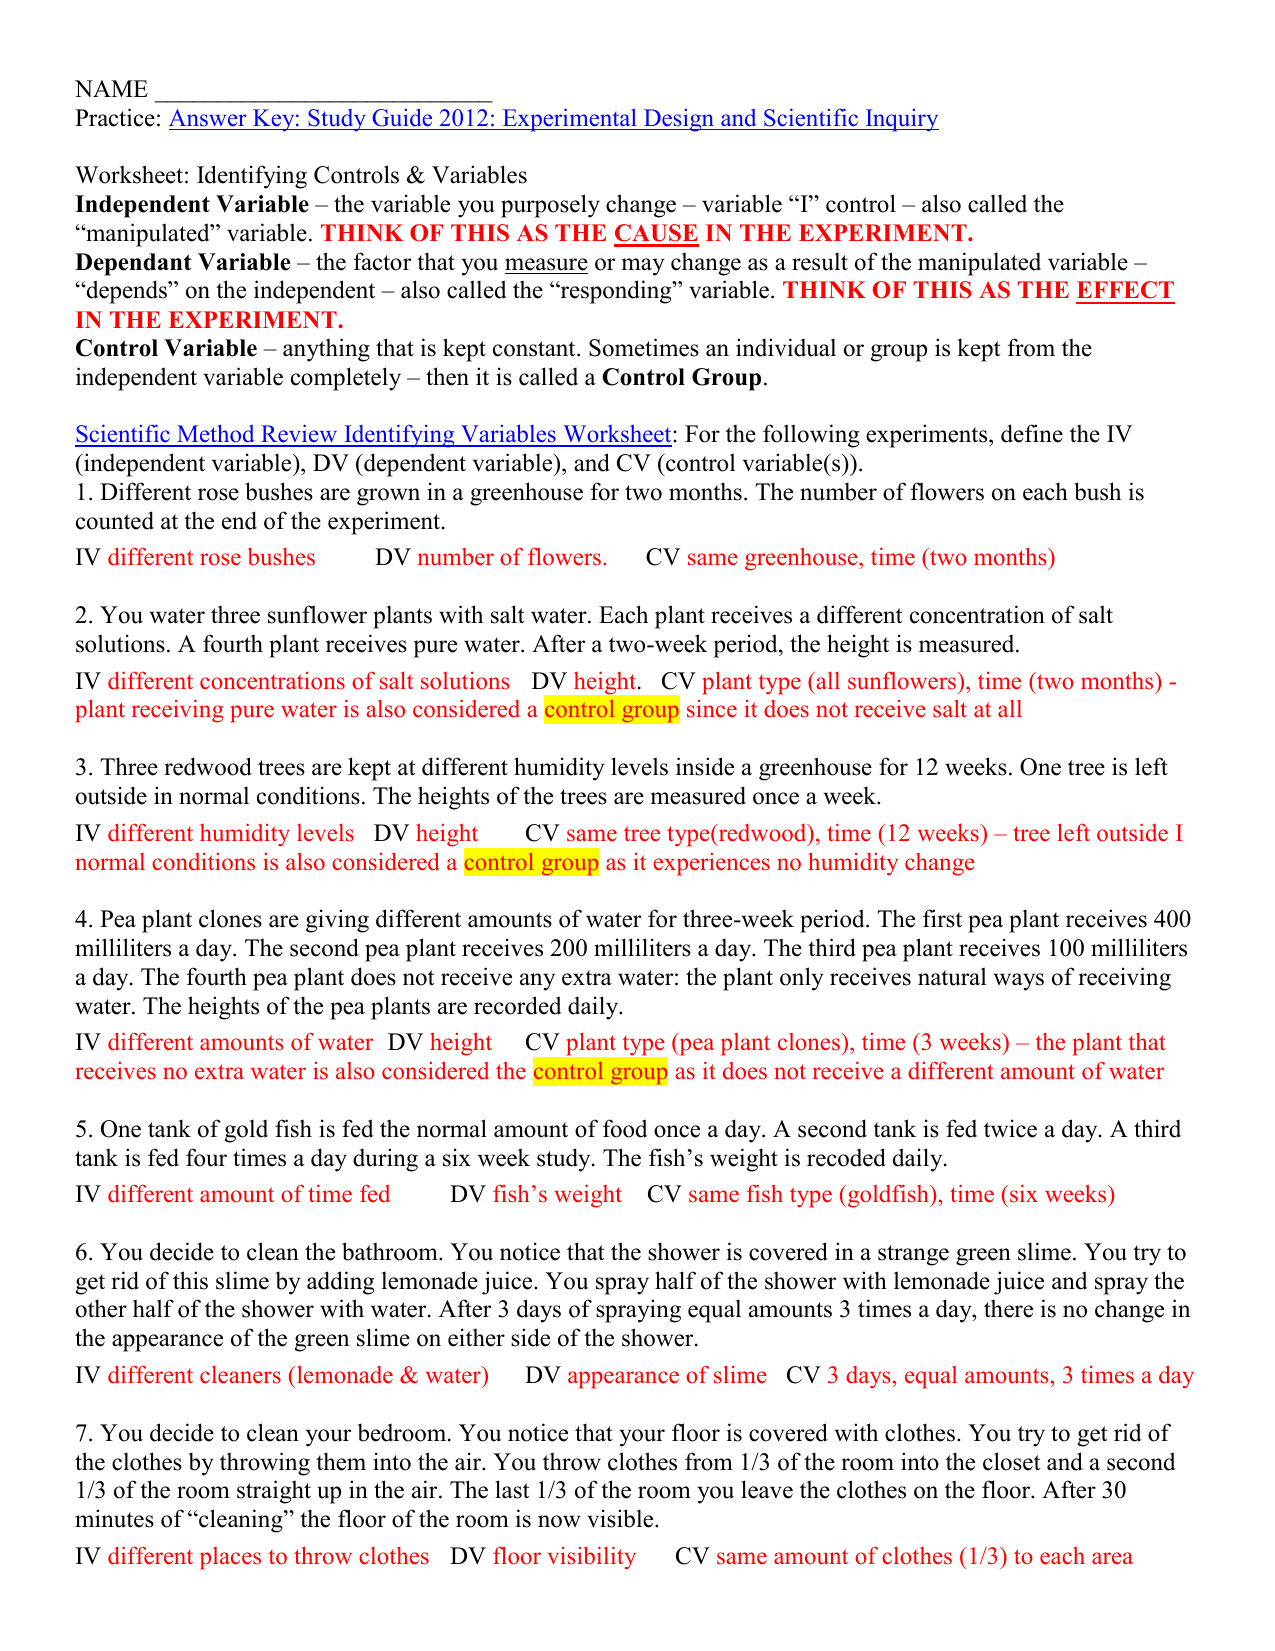 Identifying controls & variables practice worksheet key For Identifying Variables Worksheet Answers